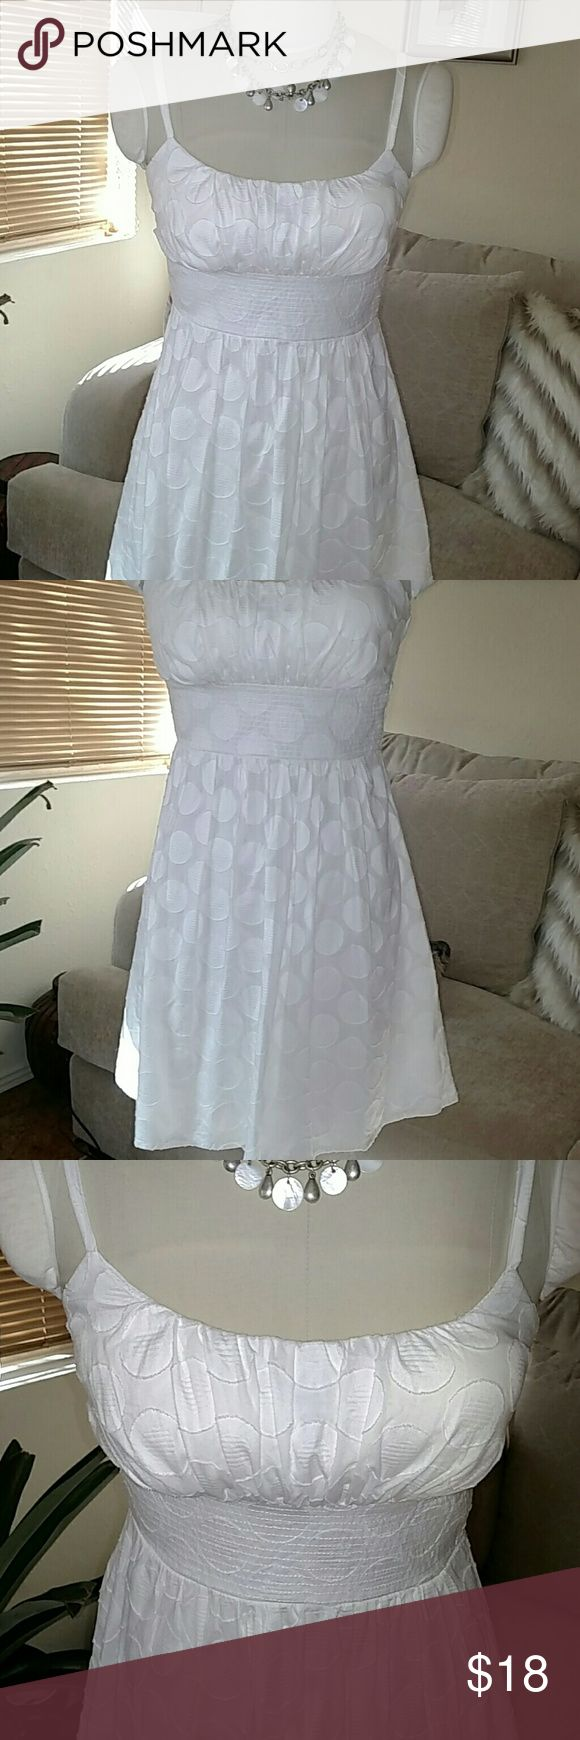 White Summer Dress Cute white summer dress • fully lined • back zipper • built-in bra • adjustable straps • polka dot design • 100% cotton • size 6 • worn once • excellent quality • perfect condition B. SMART Dresses